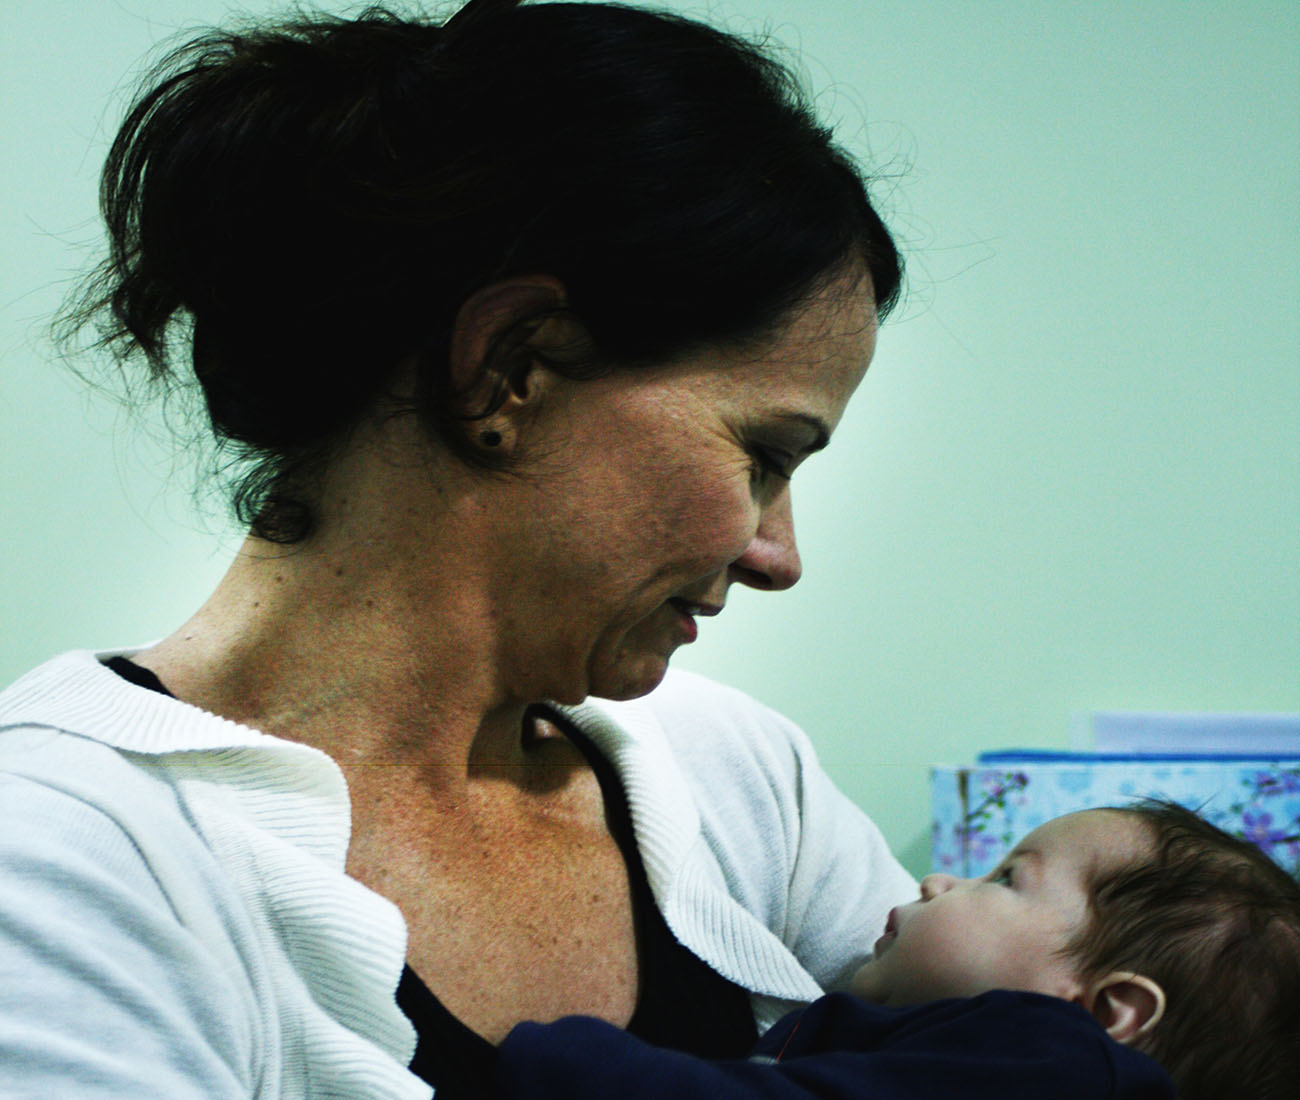 Children's Health - Mother looking at baby